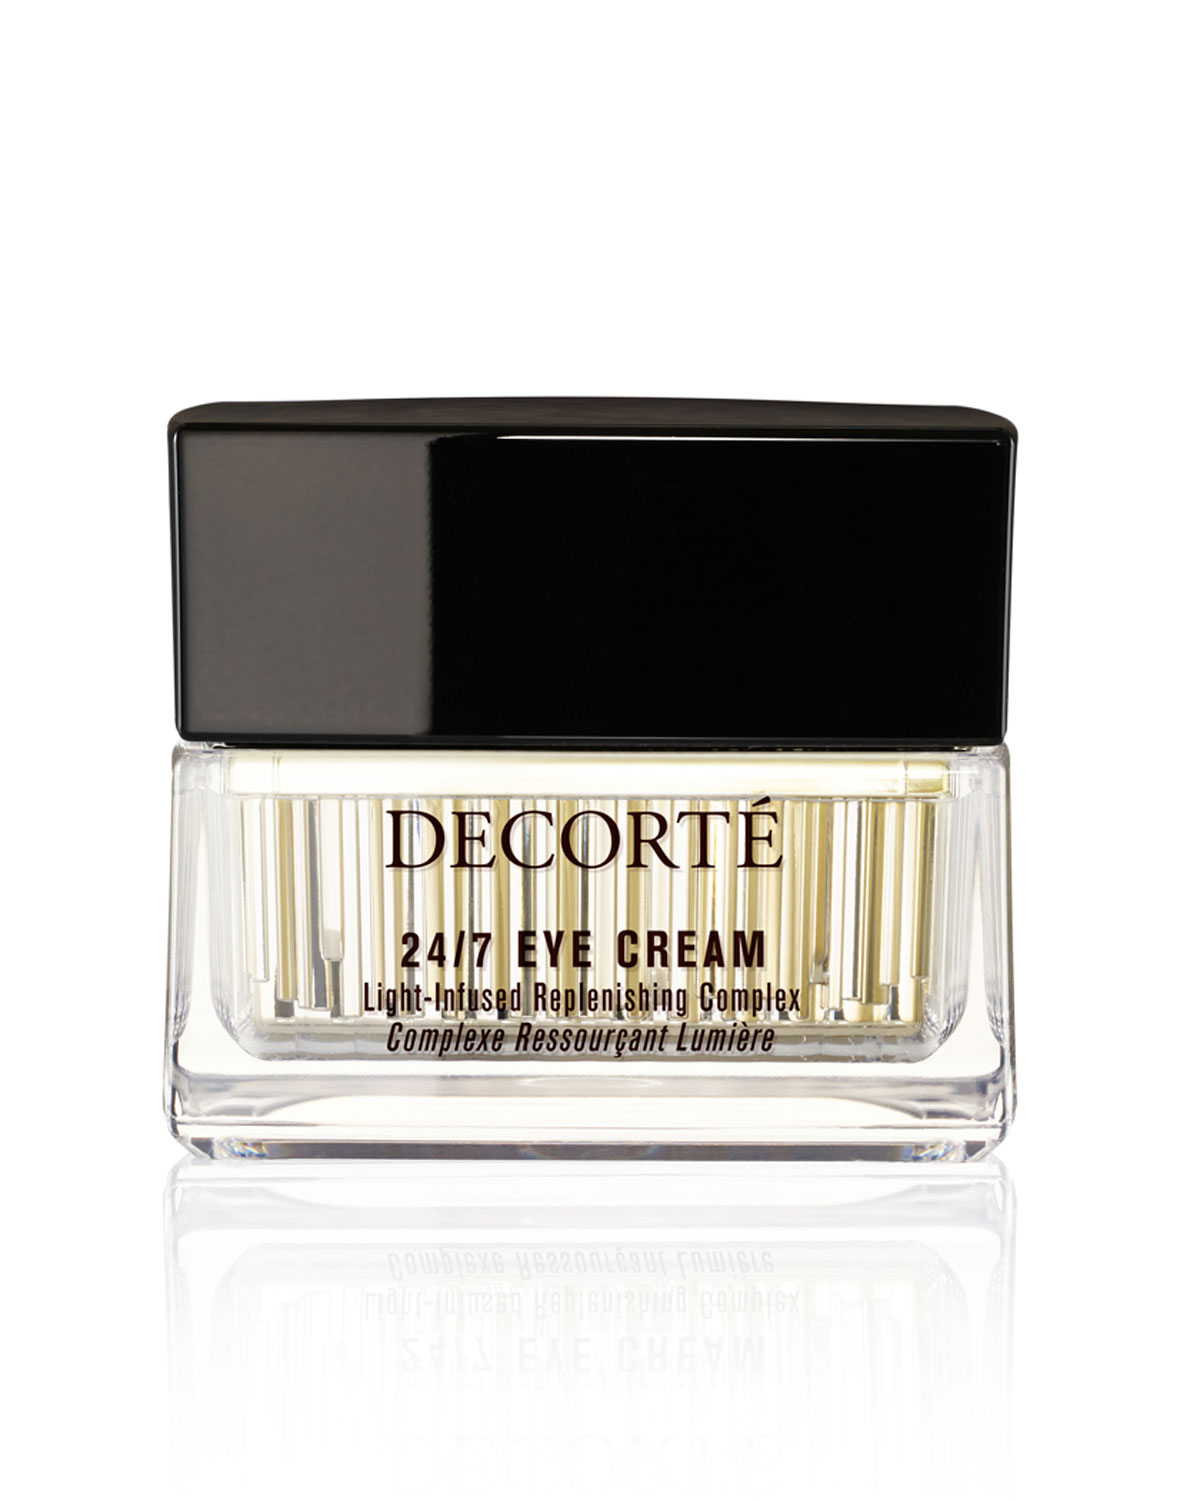 DECORTE 0.5 oz. Vi-Fusion 24/7 Eye Cream